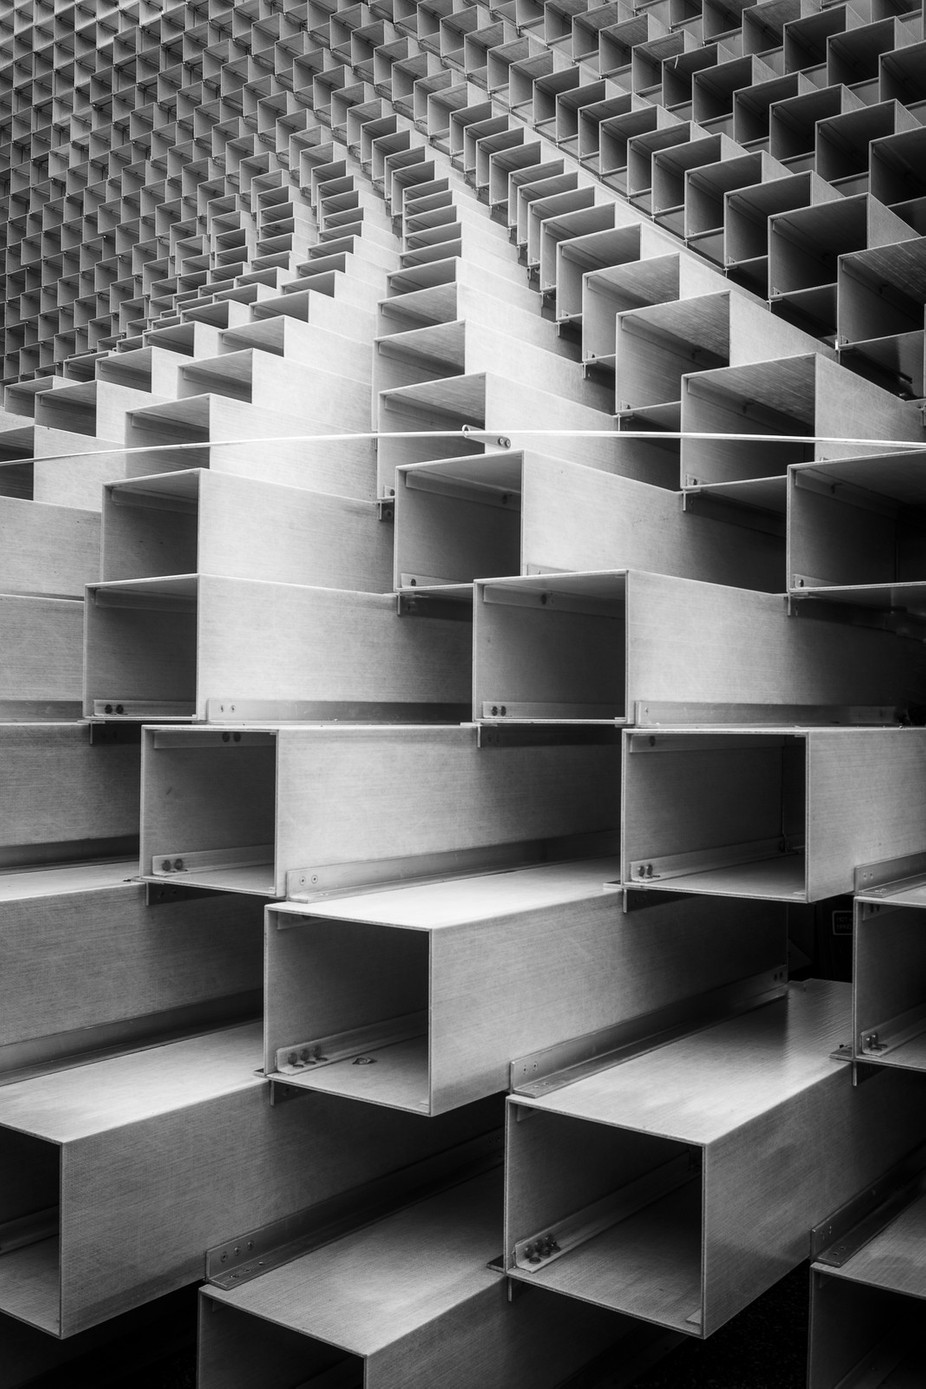 Abstracts in Architecture - the Serpentine Pavilion 2016 by jfischerphotography - Monochrome Geometry Photo Contest